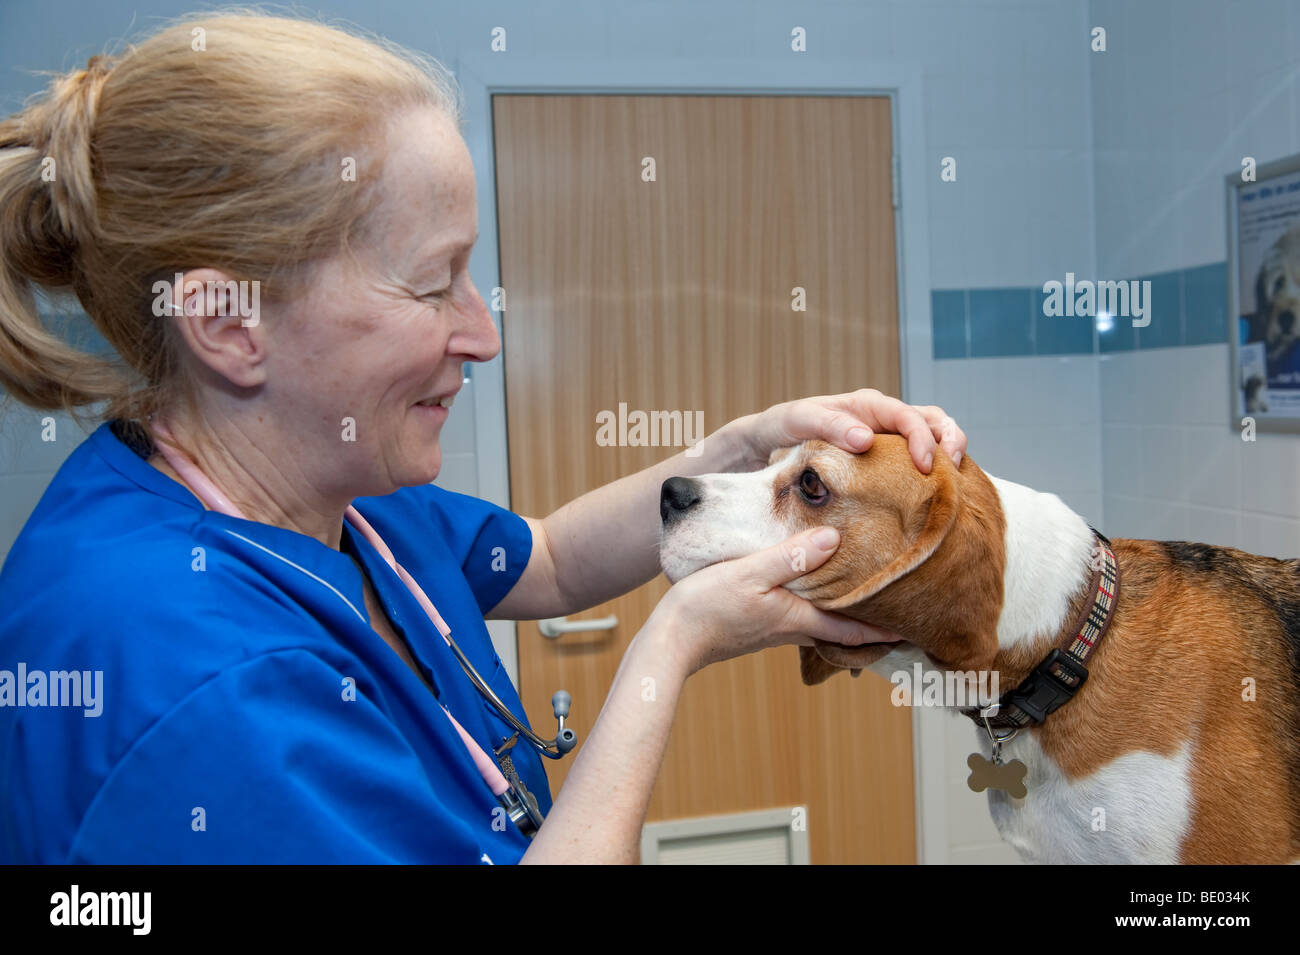 Veterinary nurse at a PDSA Animal Hospital examining a Beagle dog Stock Photo